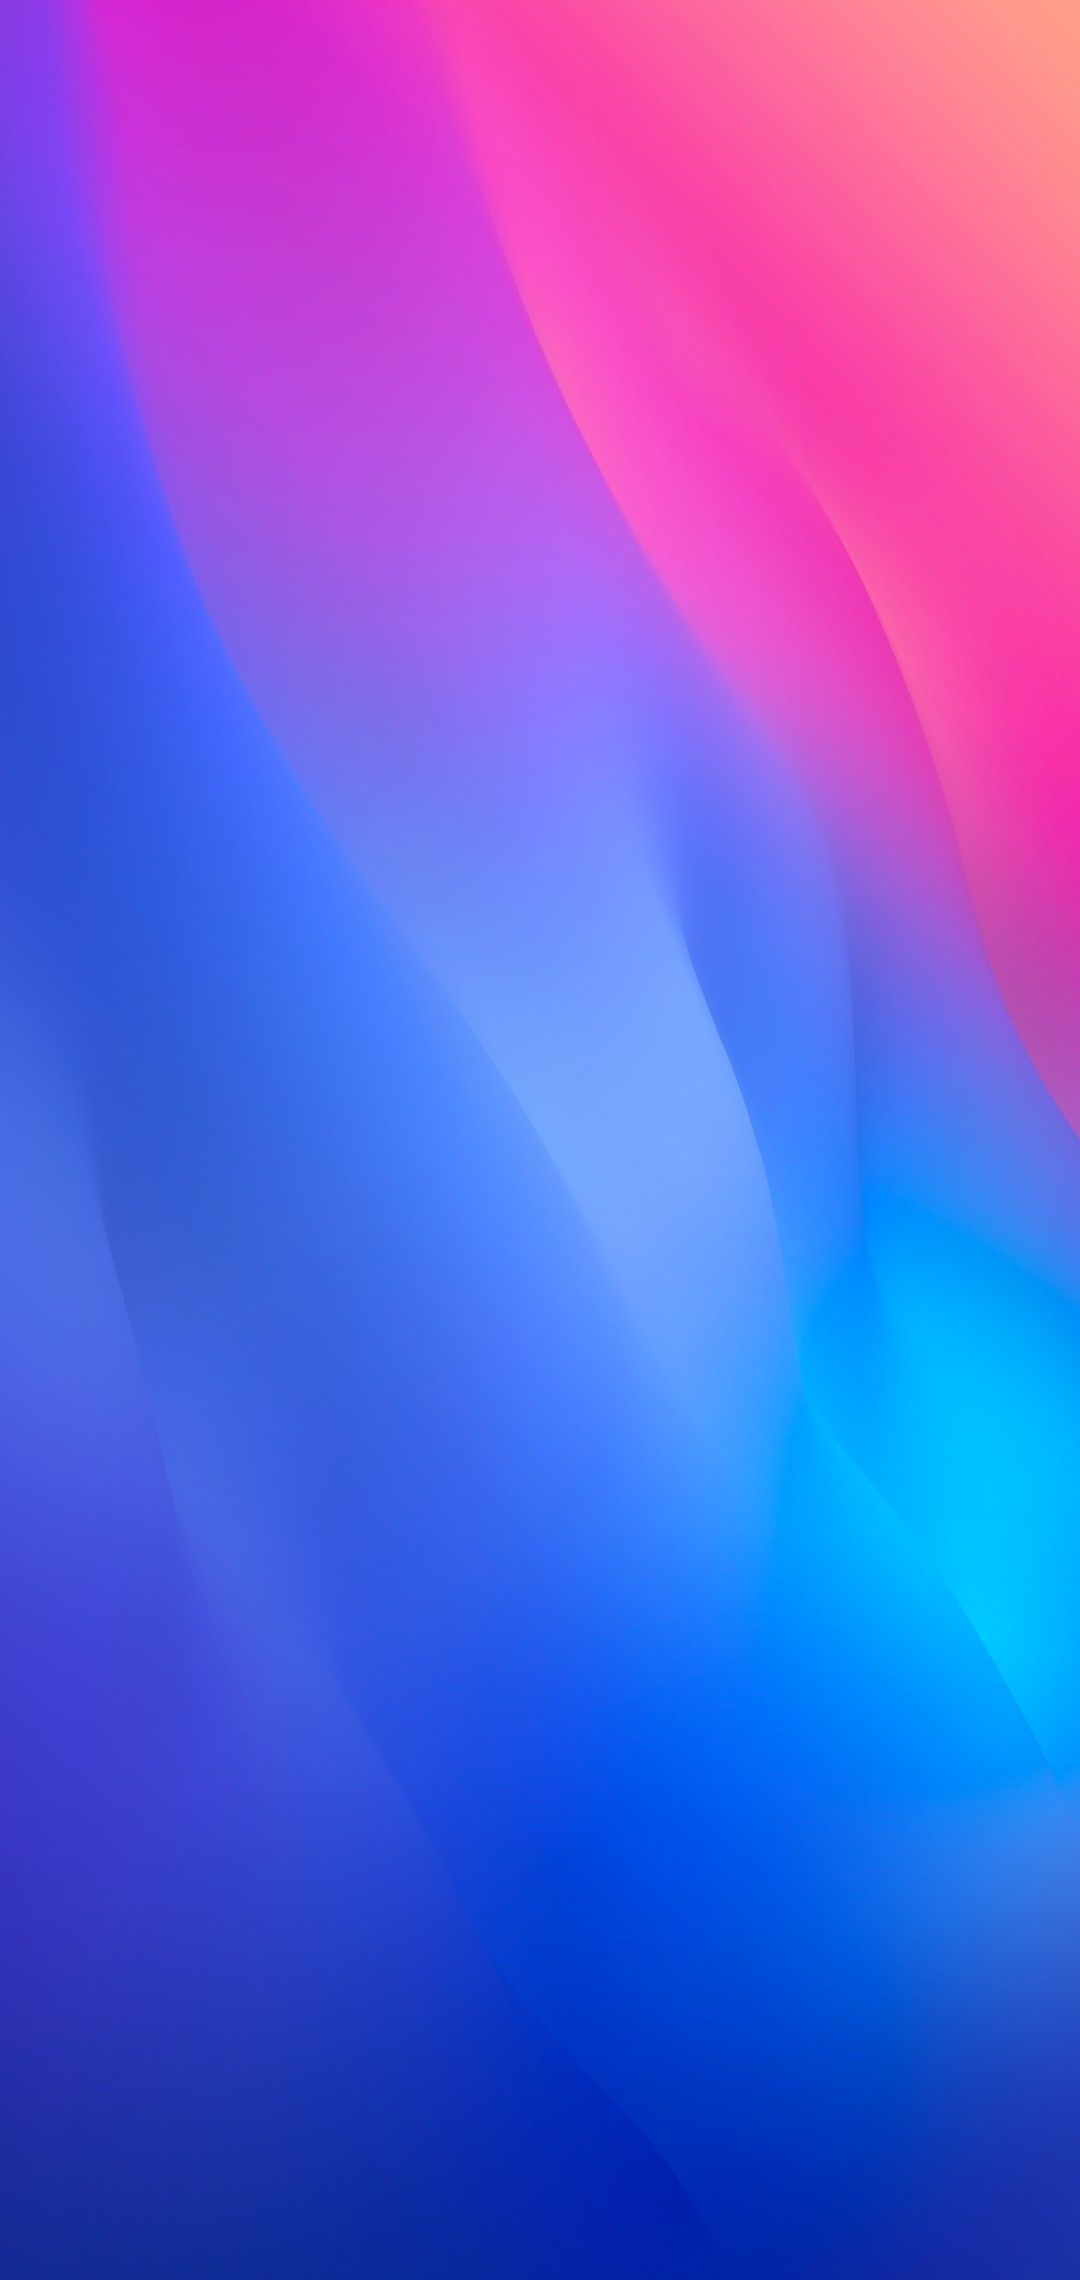 Ios 12 Iphone X Blue Pink Clean Simple Abstract Apple